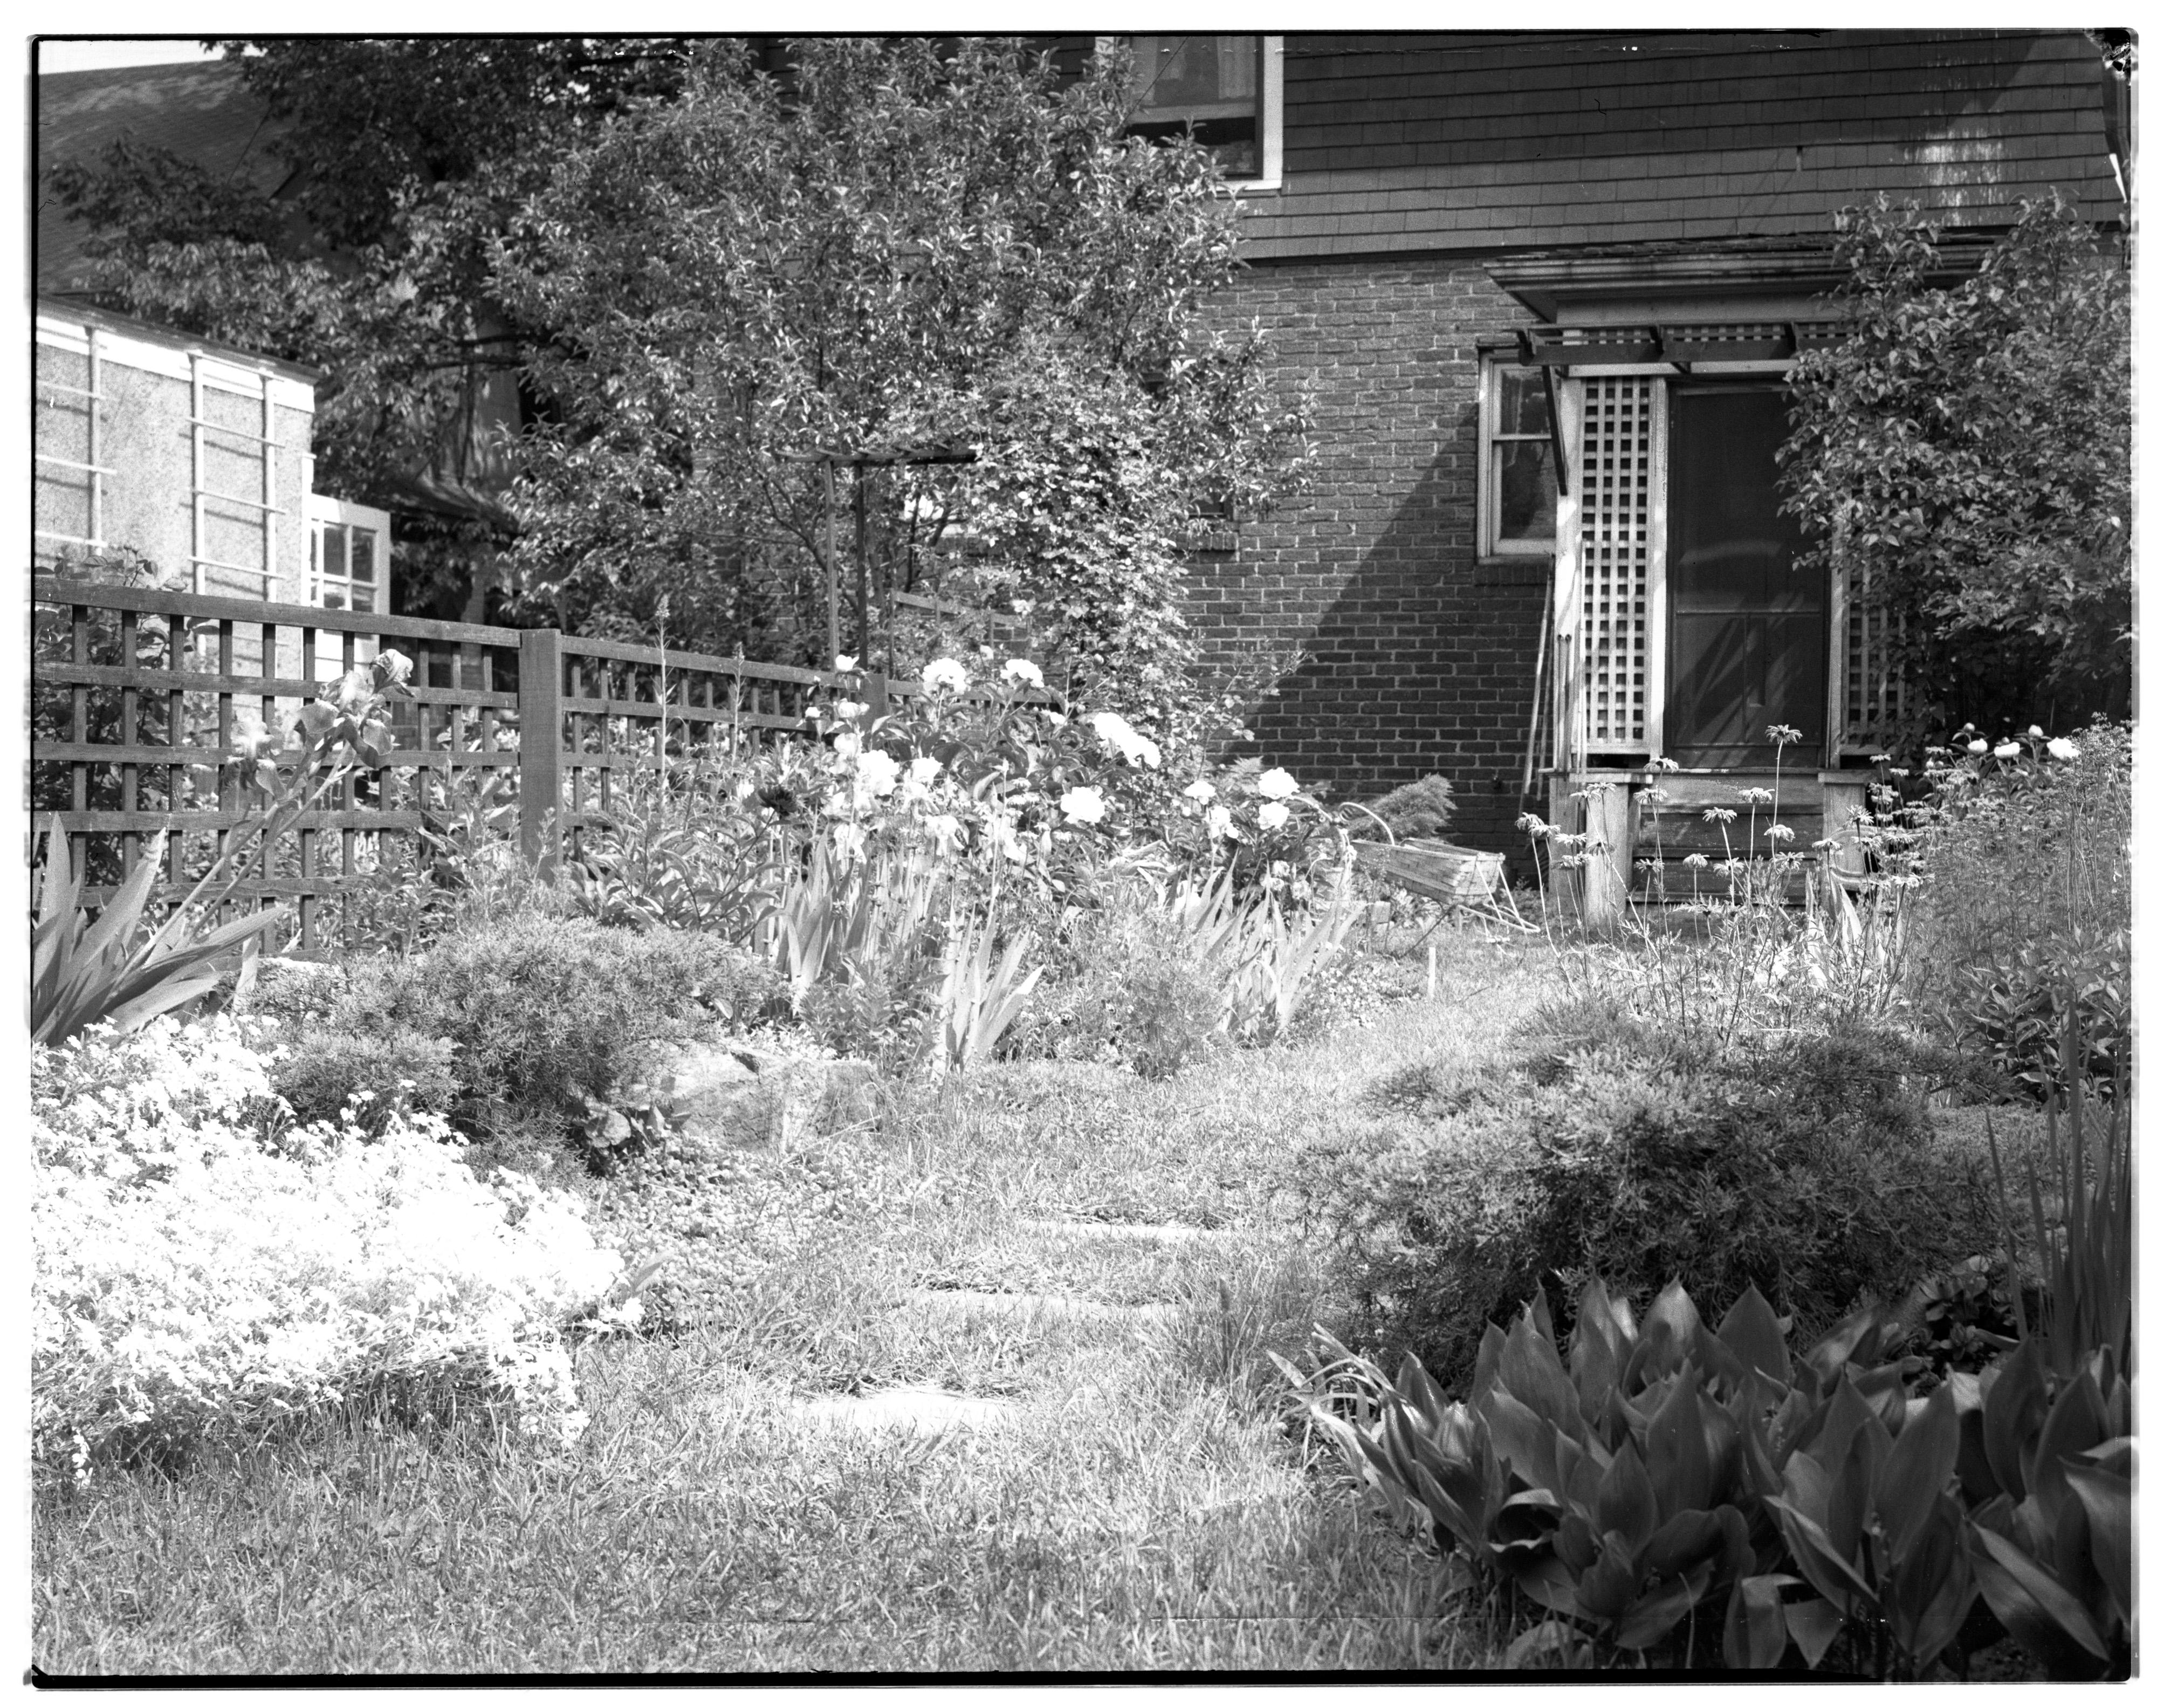 Mr. and Mrs. George C. Cone Garden, June 1, 1935 image